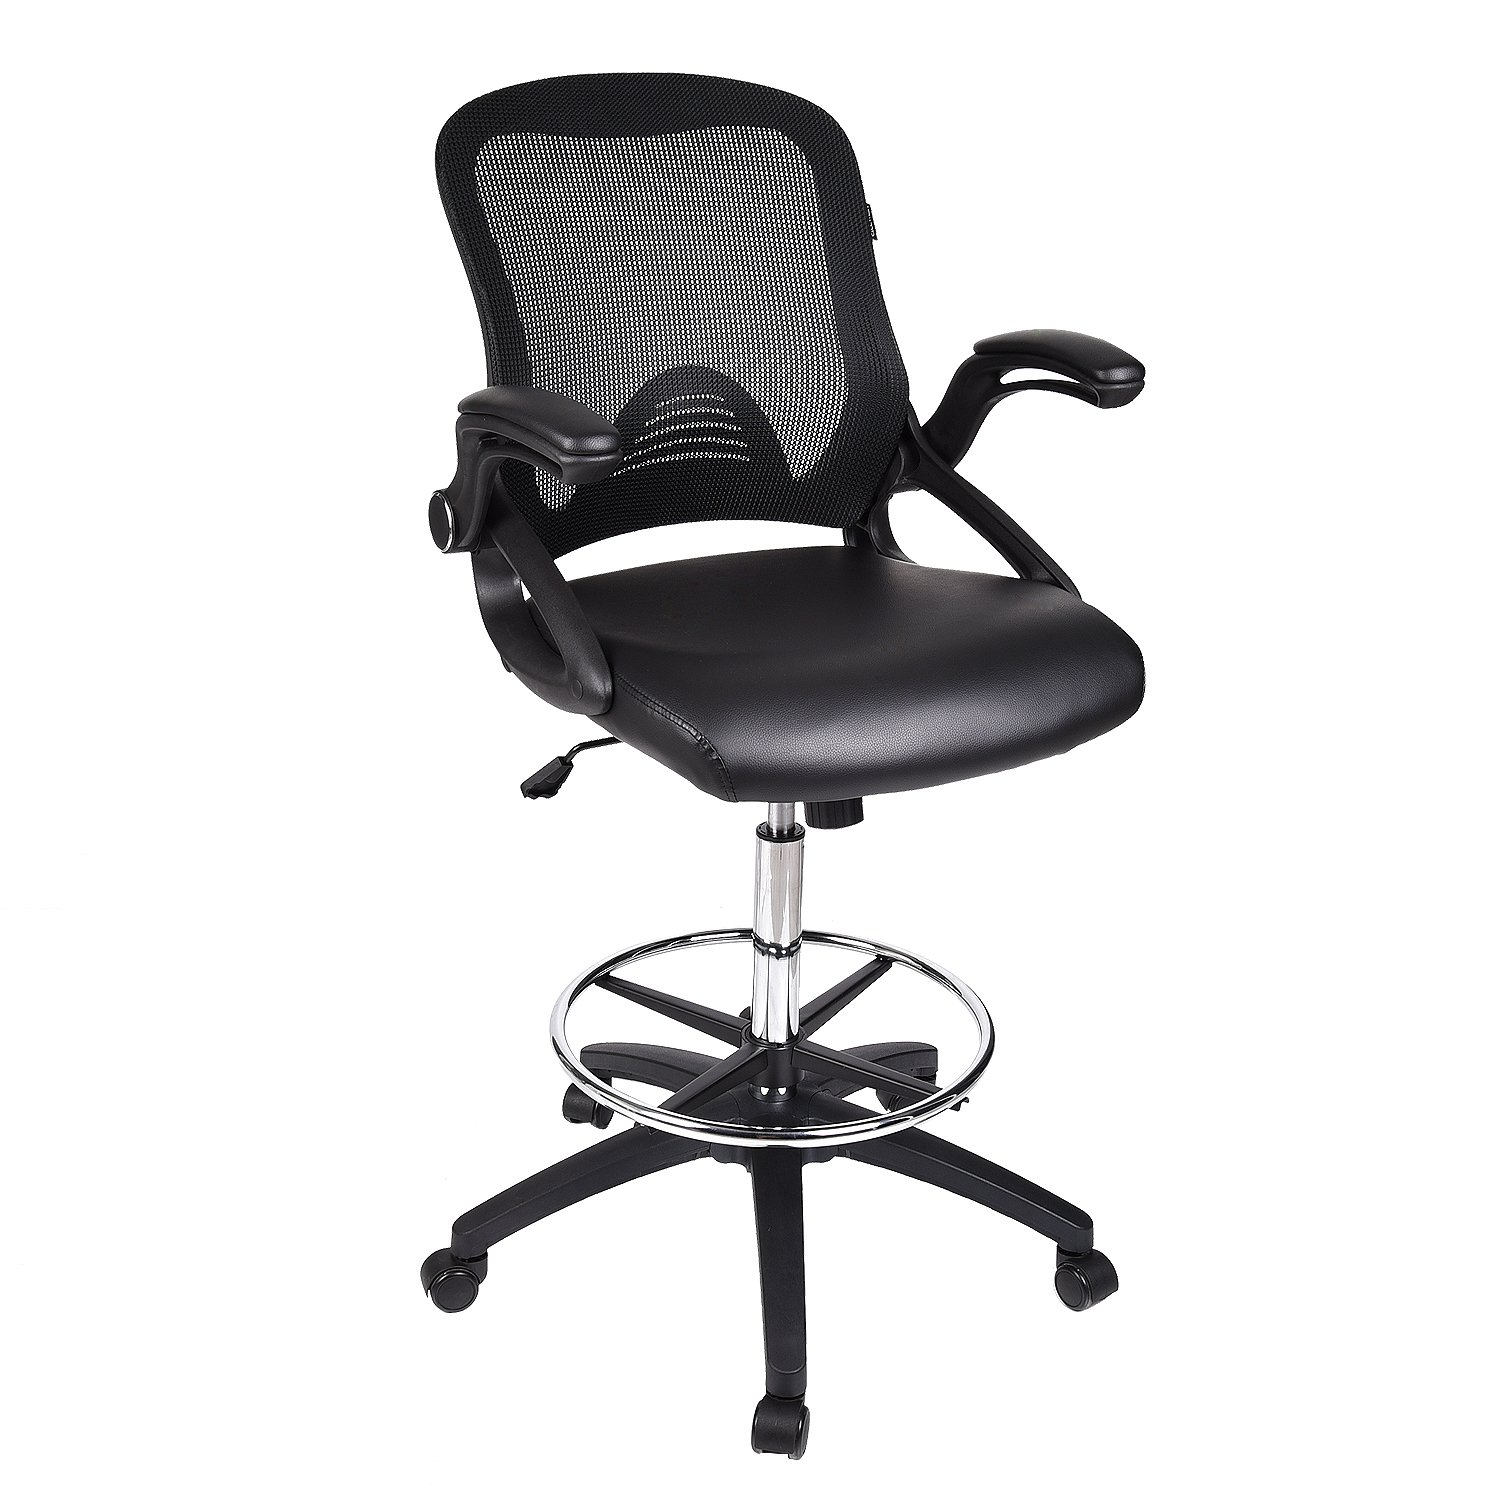 Drafting Chair Tall Office Chair for Adjustable Standing Desks with Flip-up Arm in Black PU